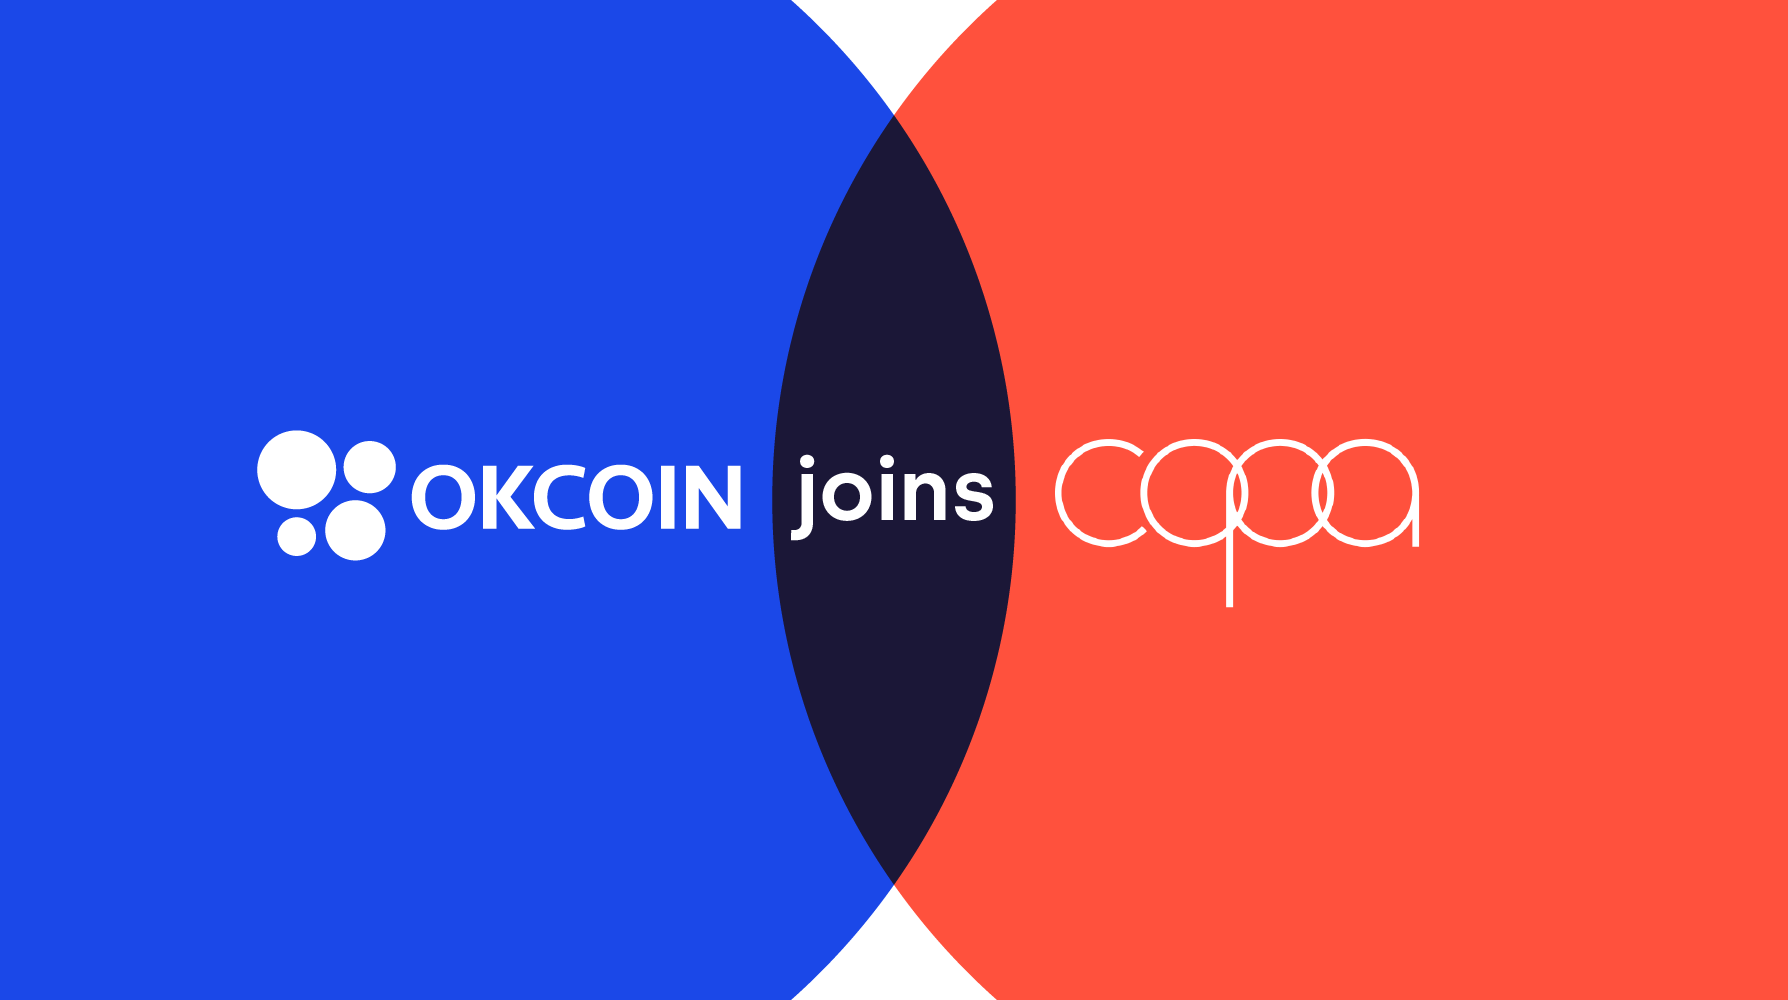 OKCoin joins COPA image